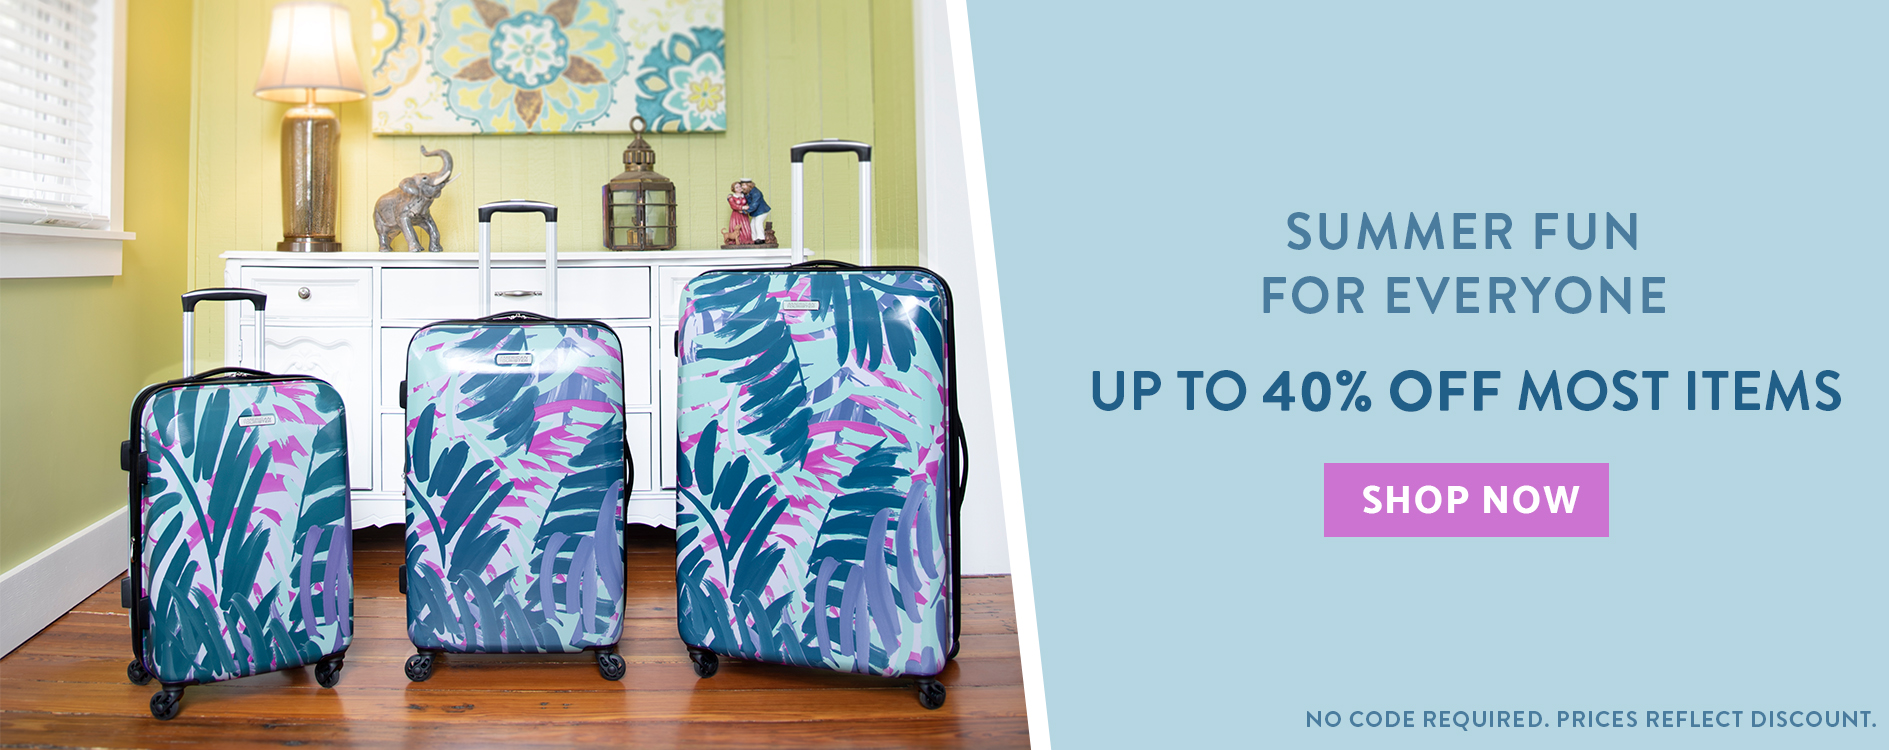 American Tourister - Pack More Fun | Stylish, High Quality